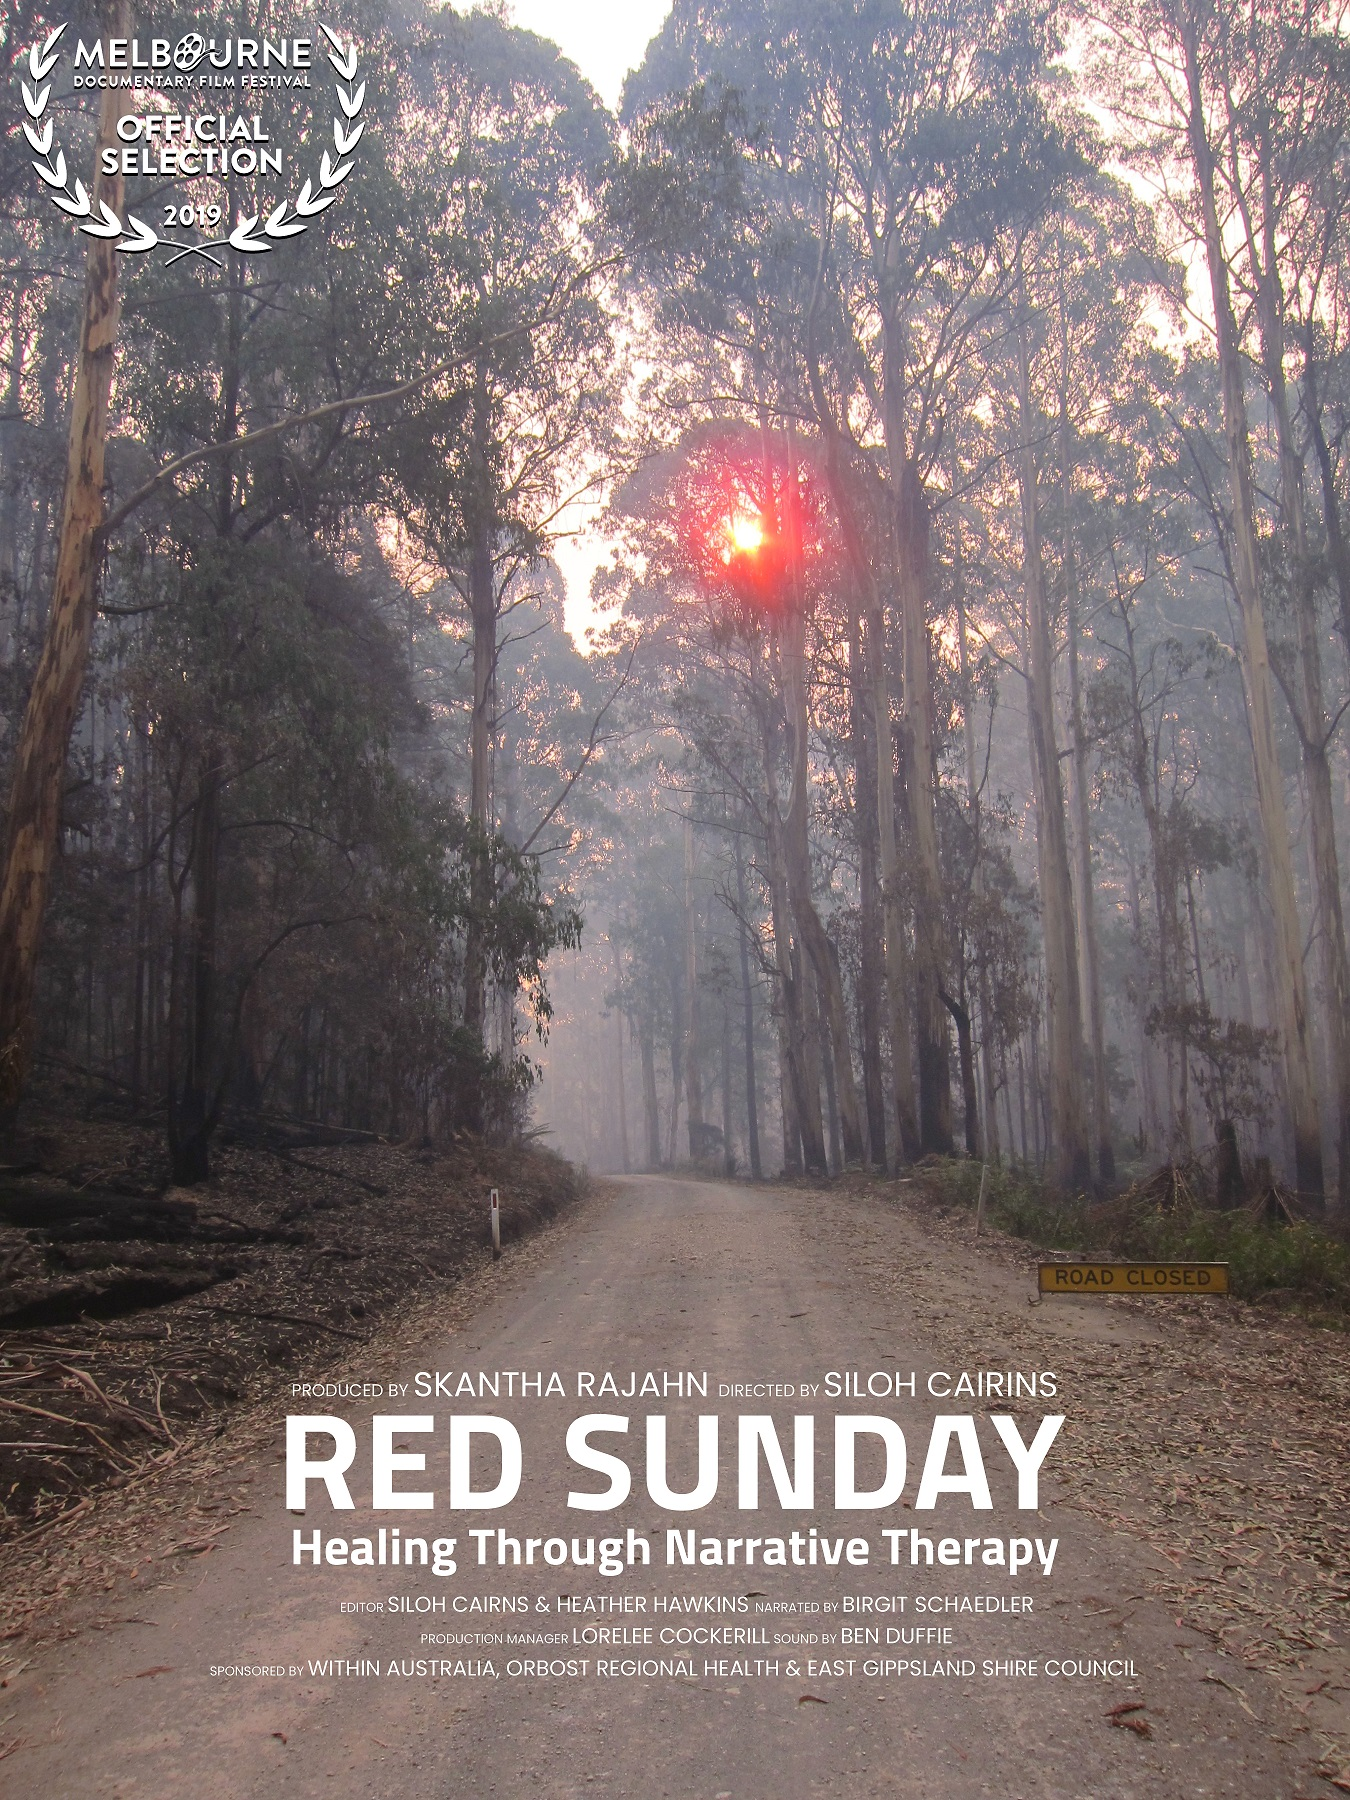 Red Sunday: Healing Through Narrative Therapy poster